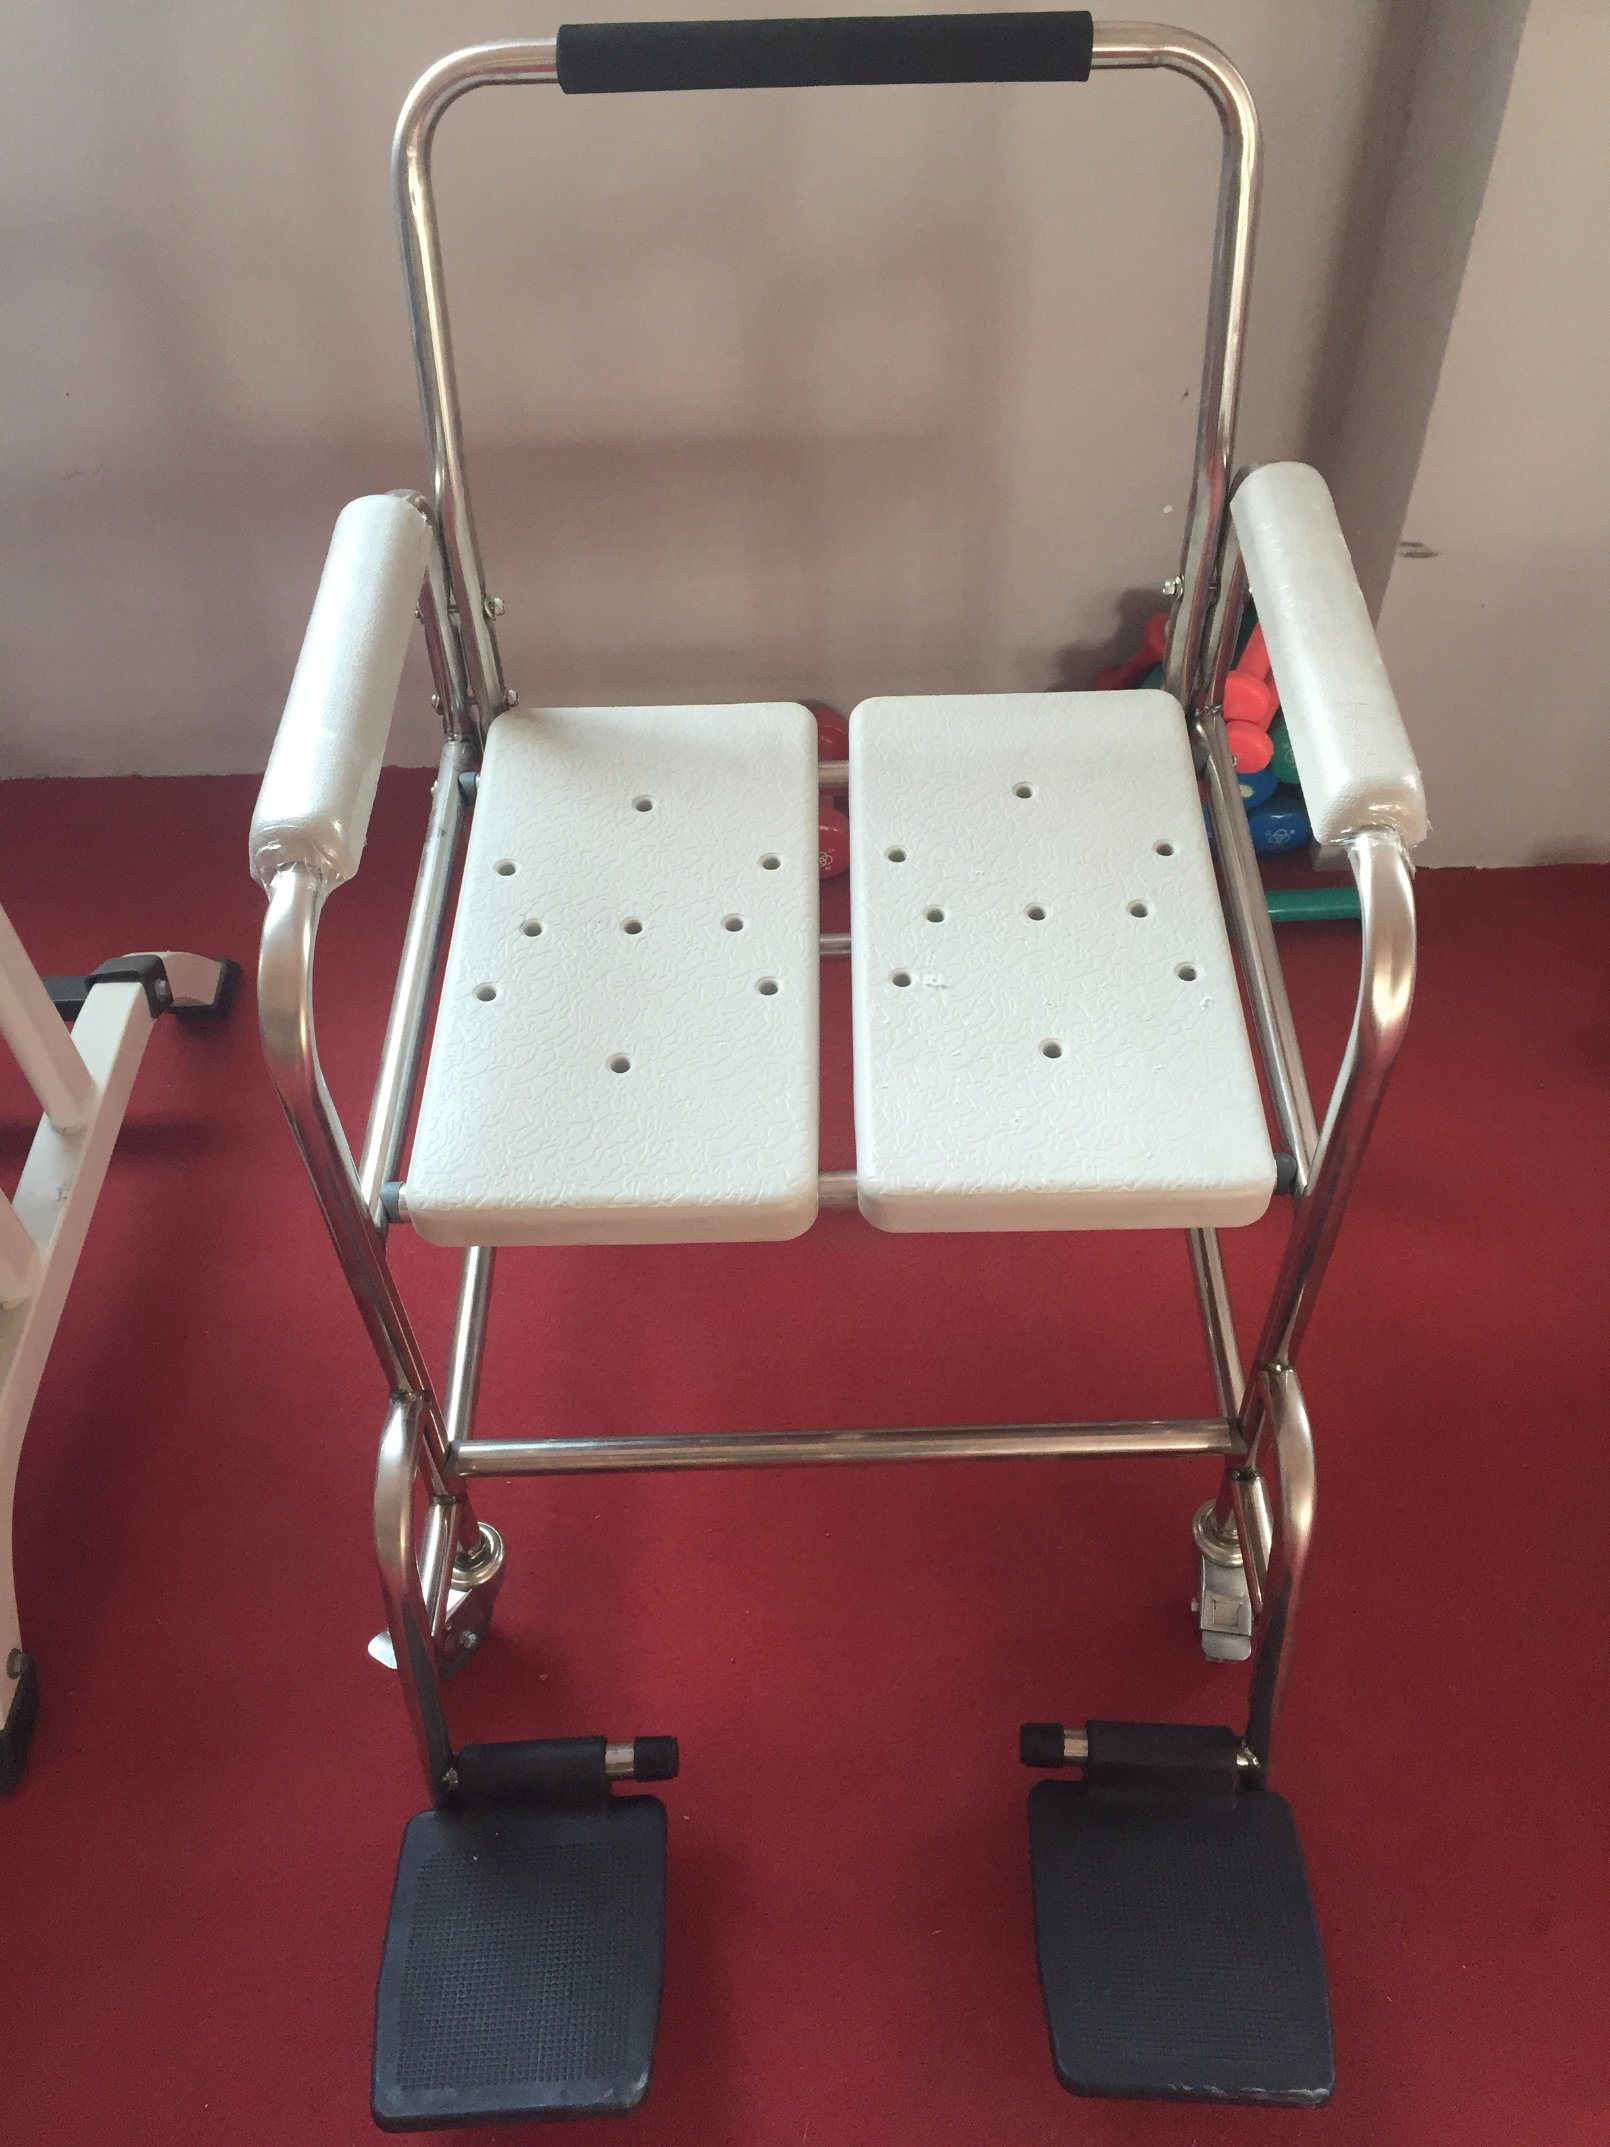 China Elderly Shower Chairs with Wheels - China Therapy ...